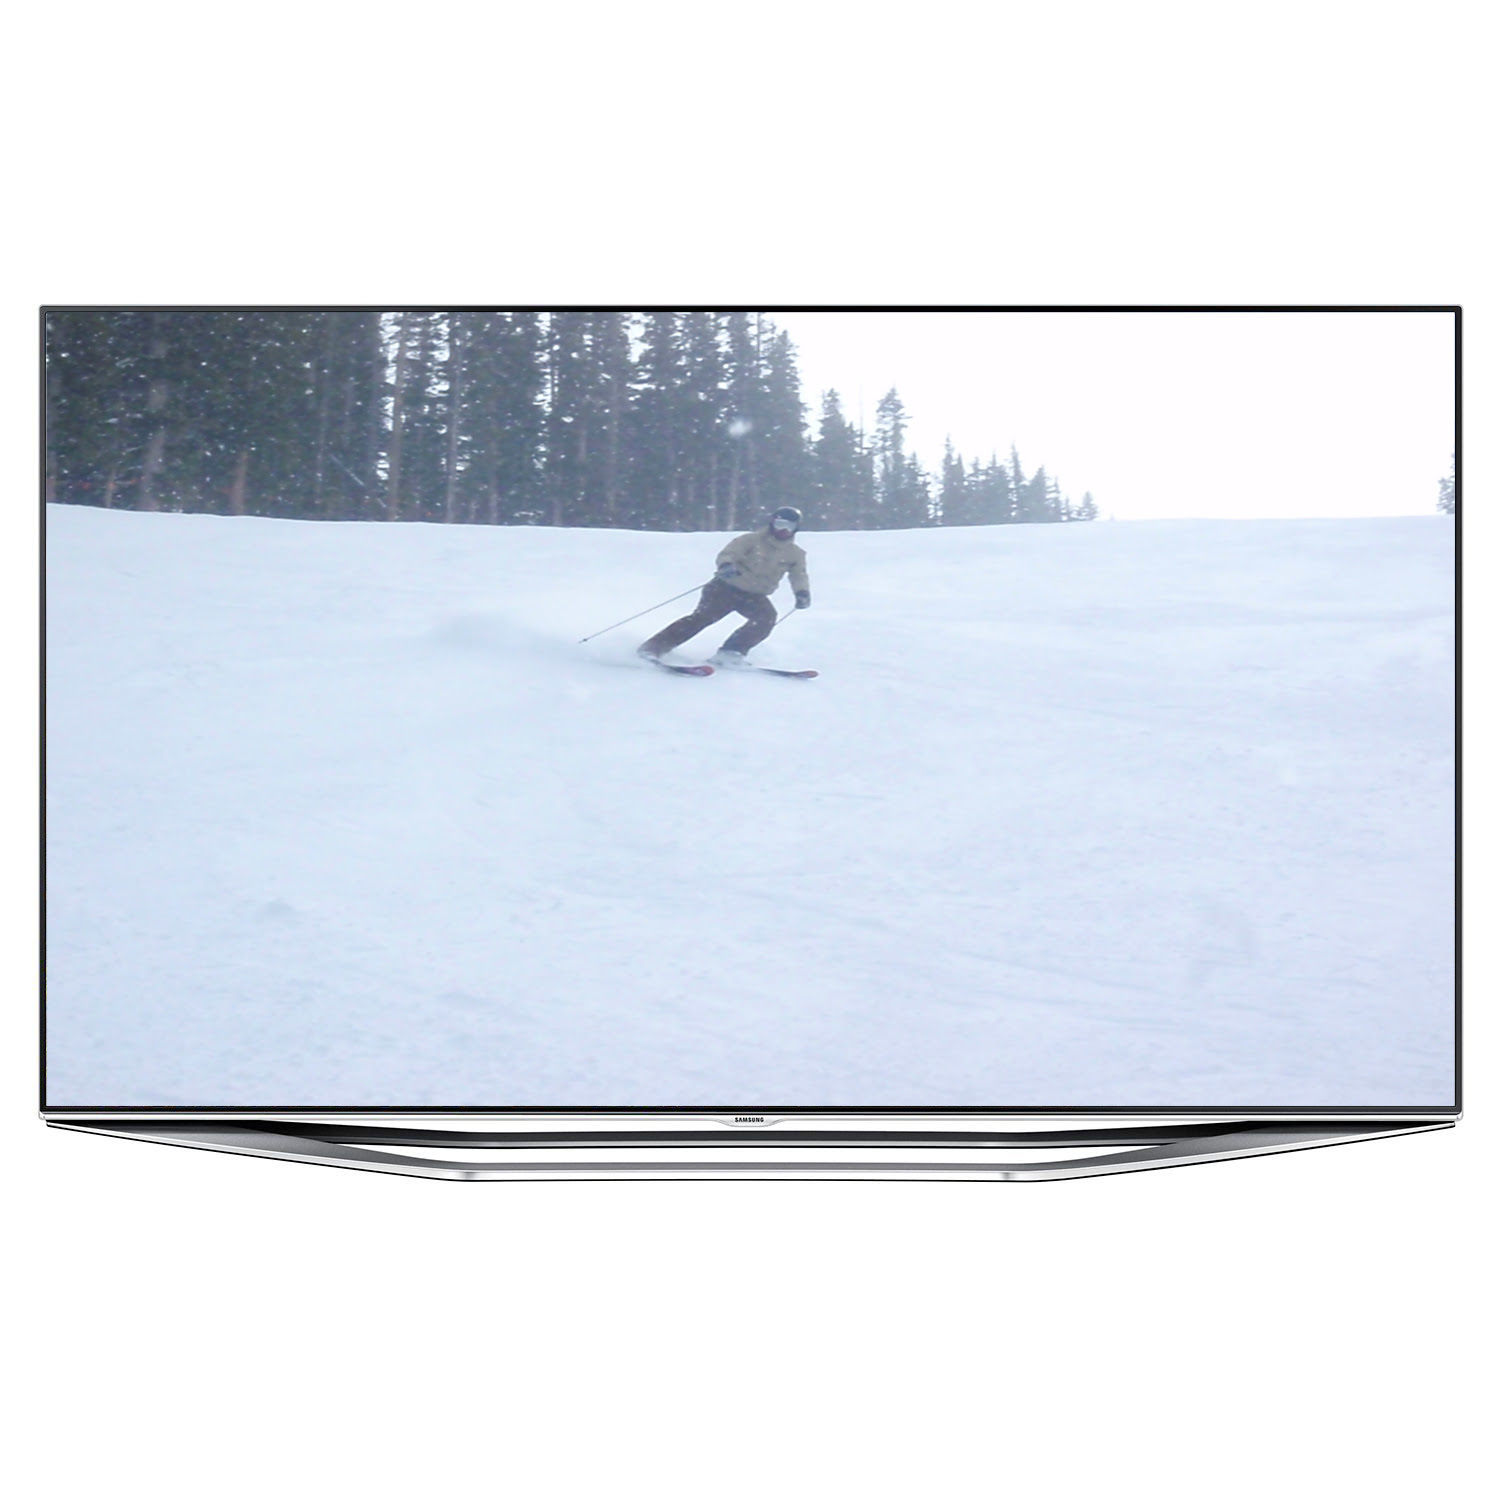 Samsung Refurbished 65 Class 1080p LED Smart Hdtv - UN65H7100